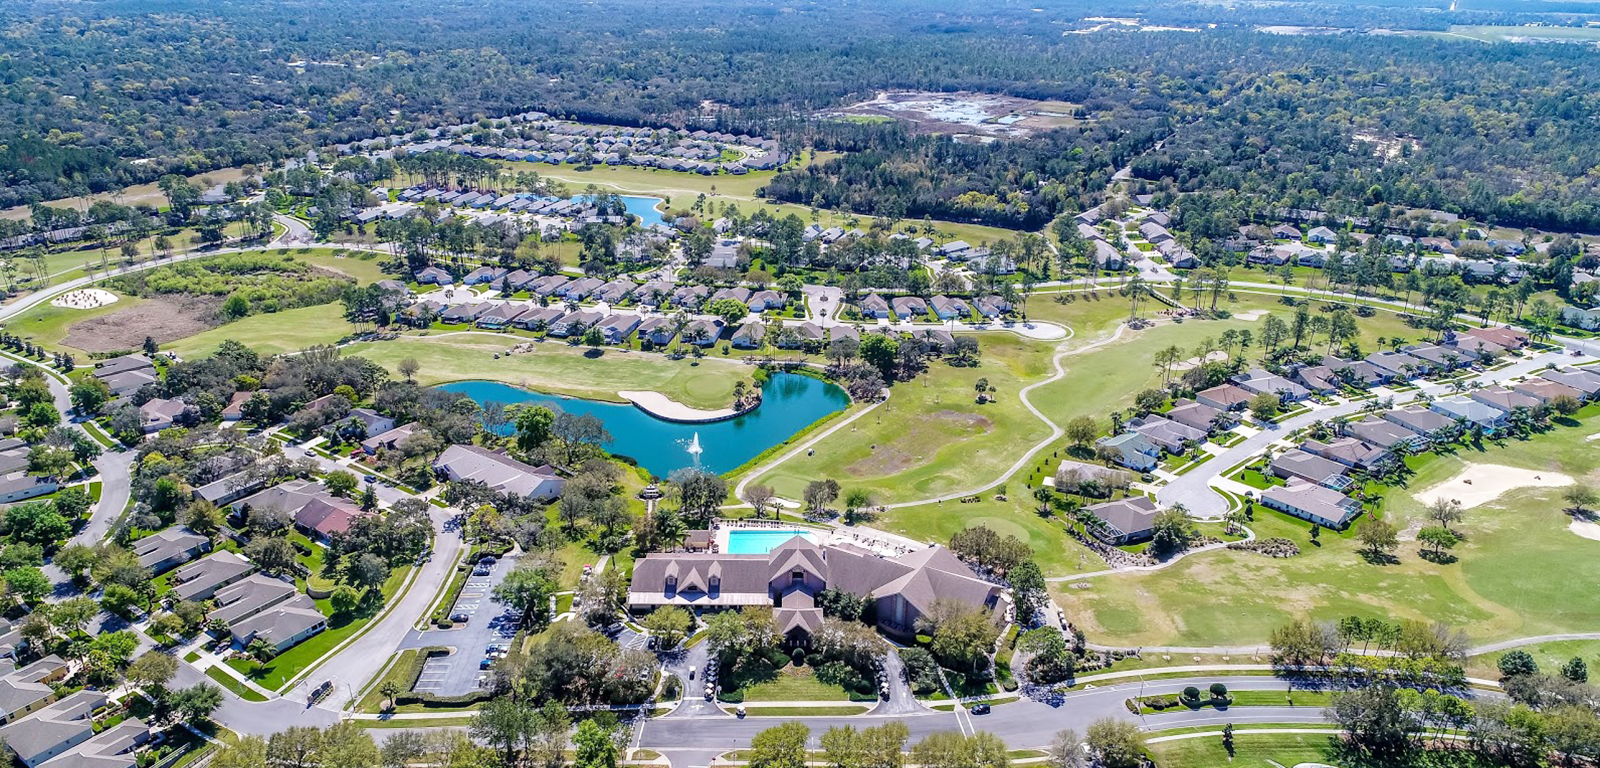 Heritage Pines - Country Club aerial photo